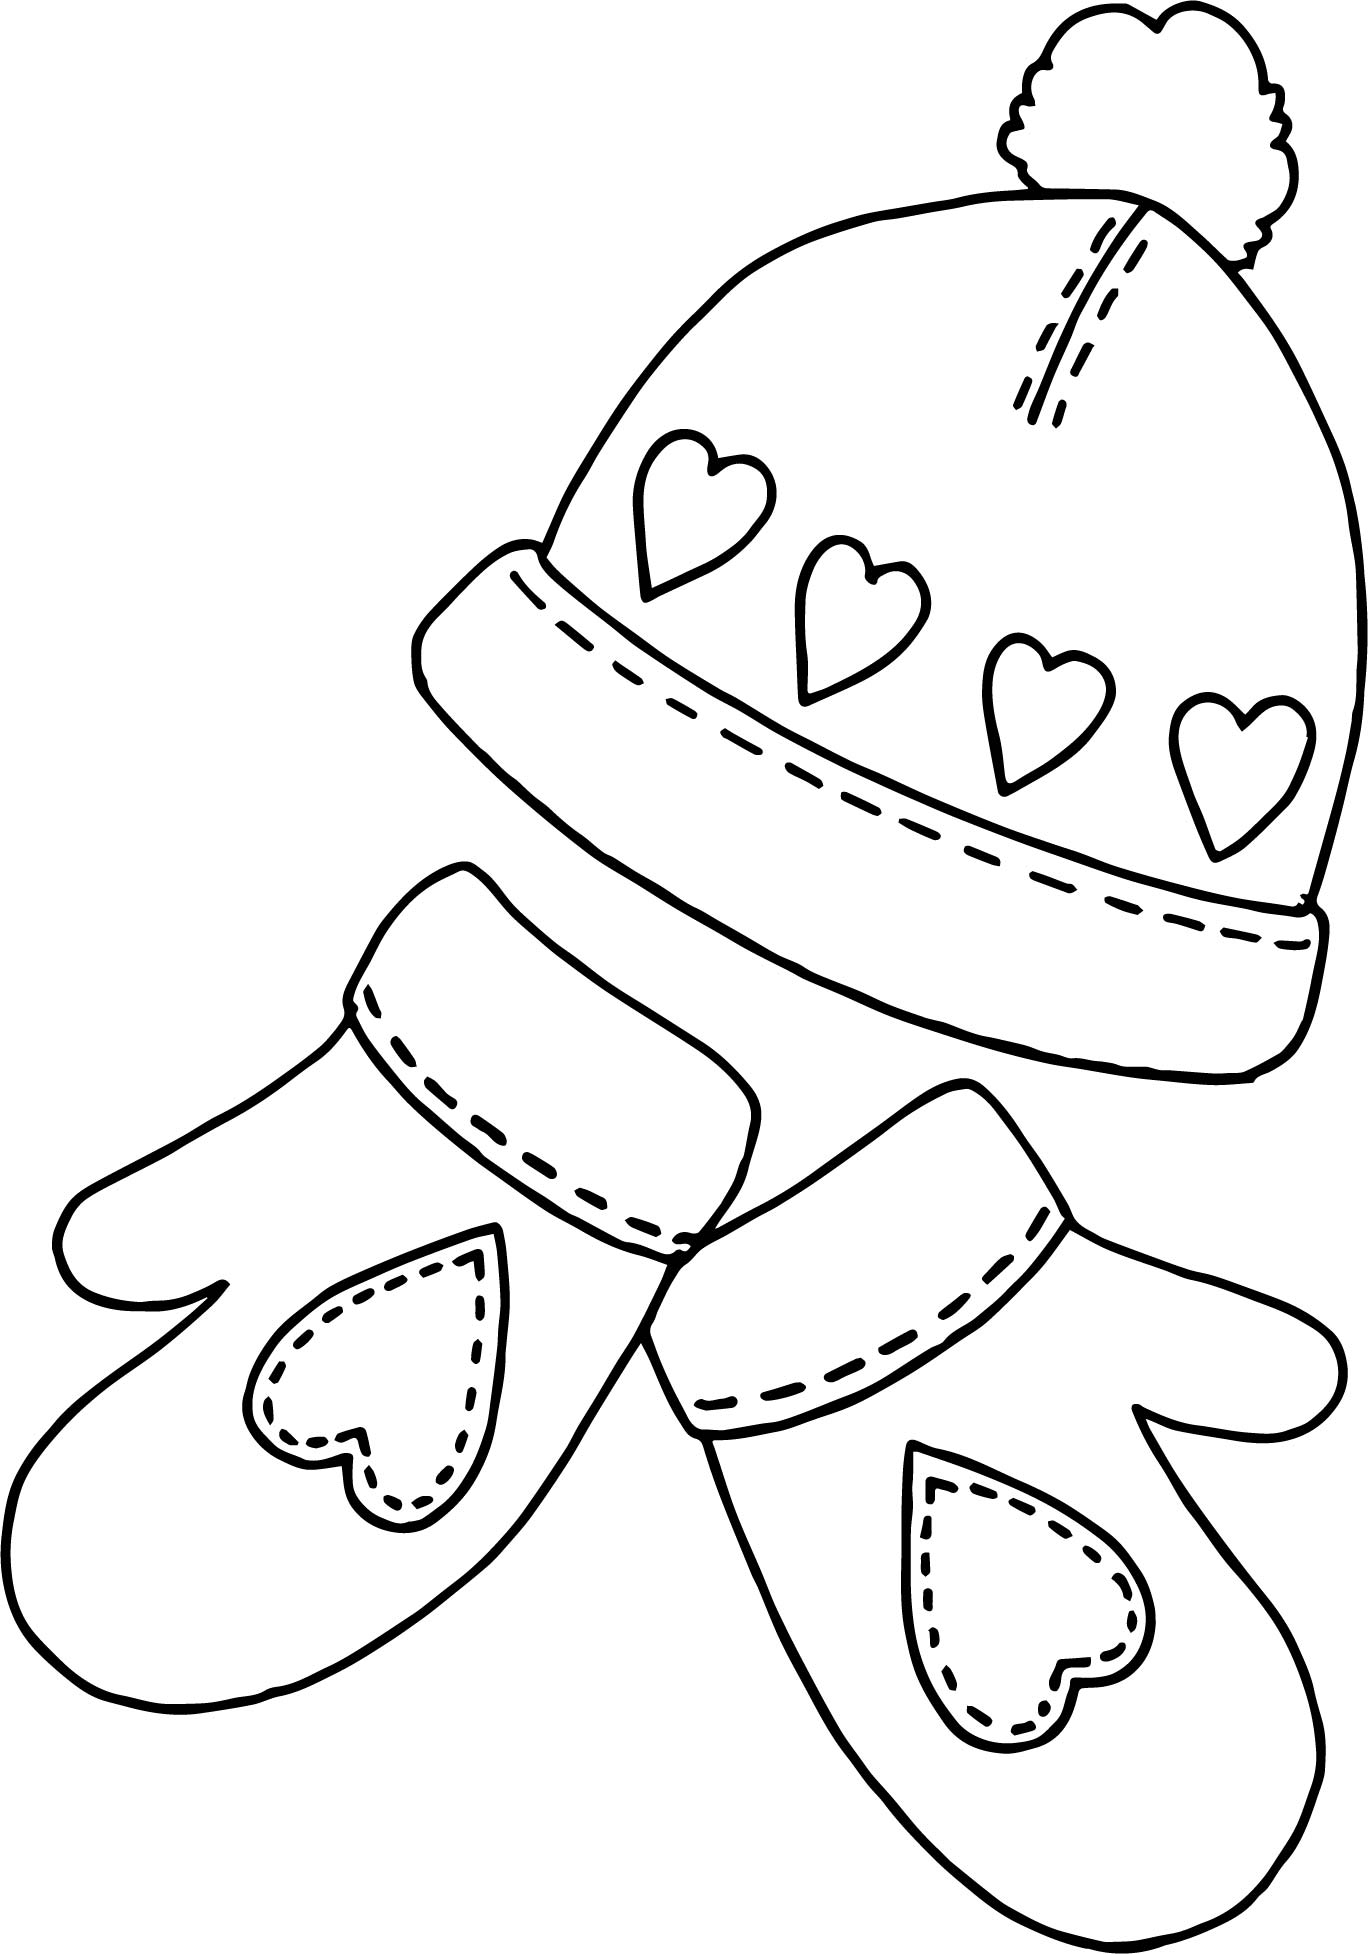 Winter Hat Sholves Coloring Page | Wecoloringpage